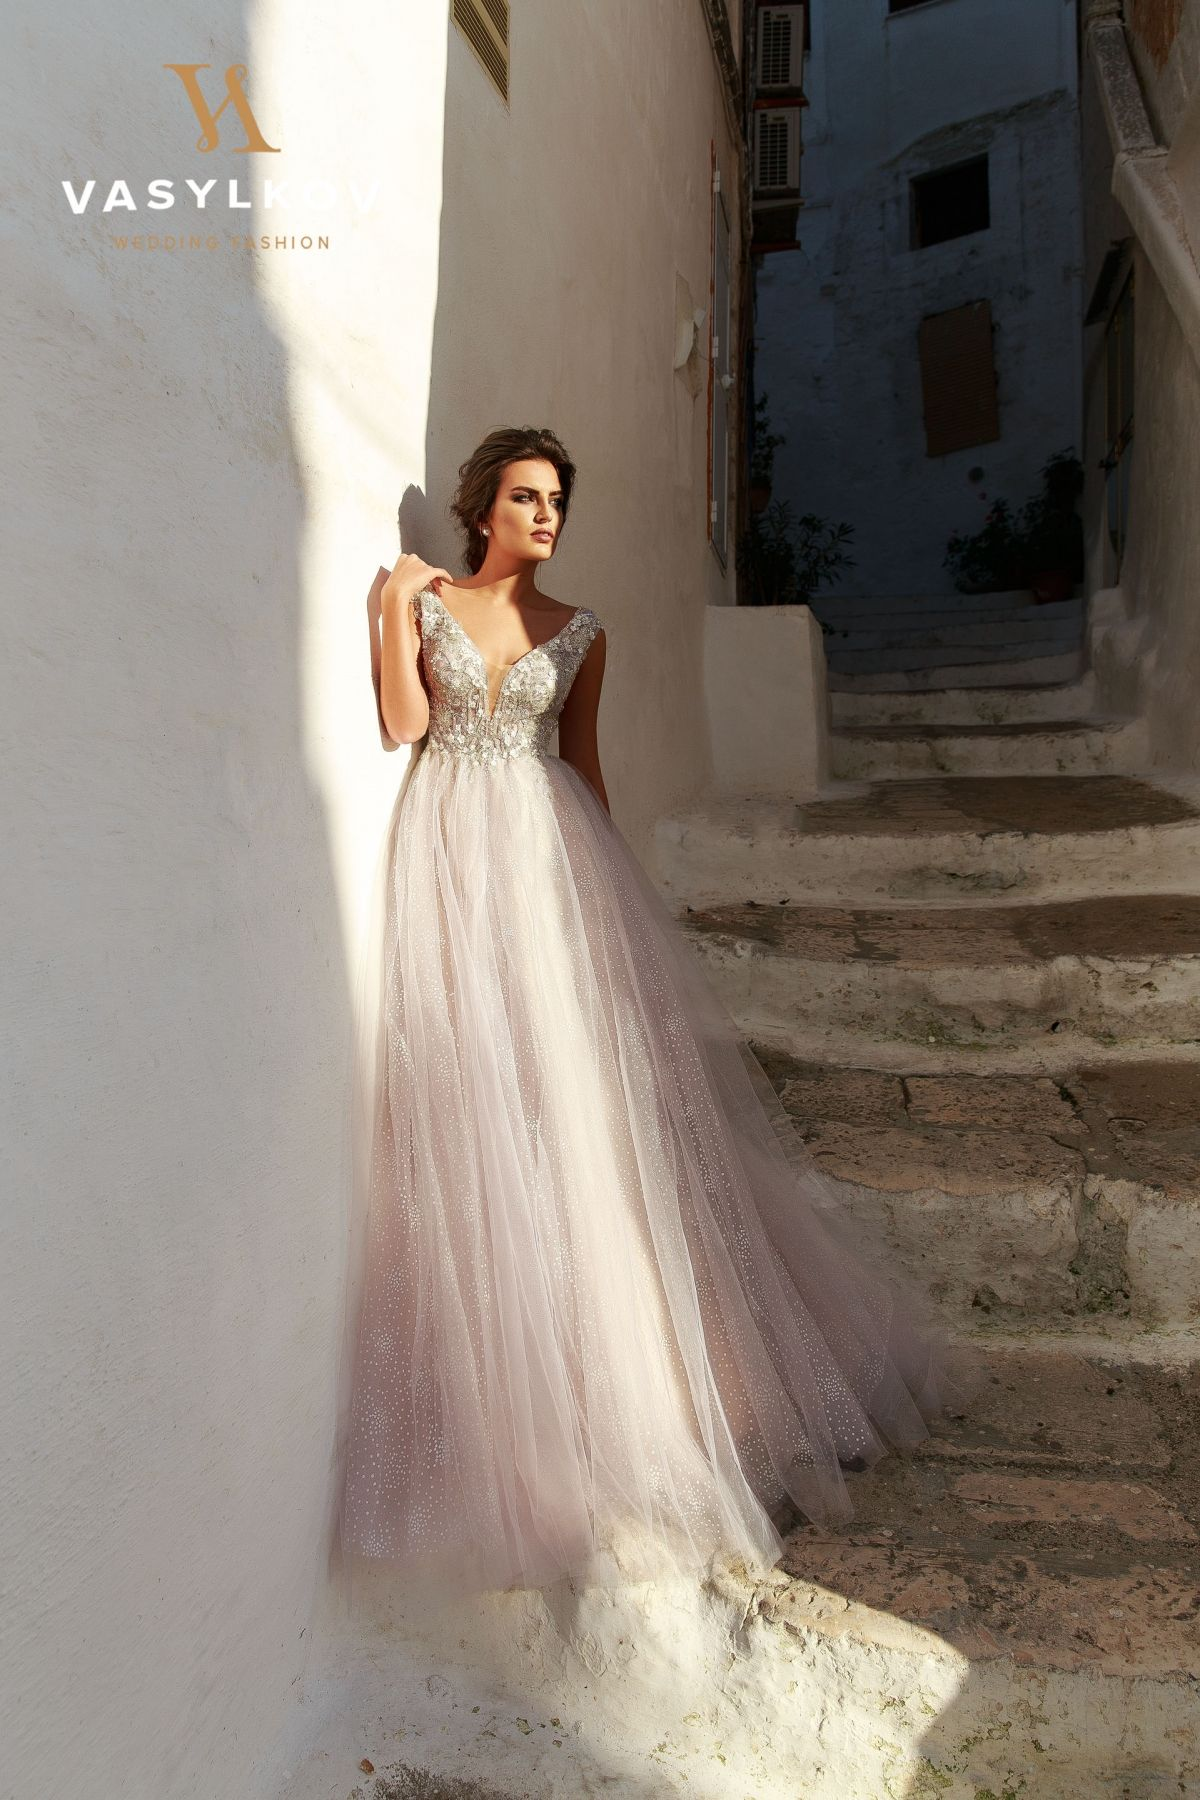 To acquire Bridal Western gowns collection picture trends